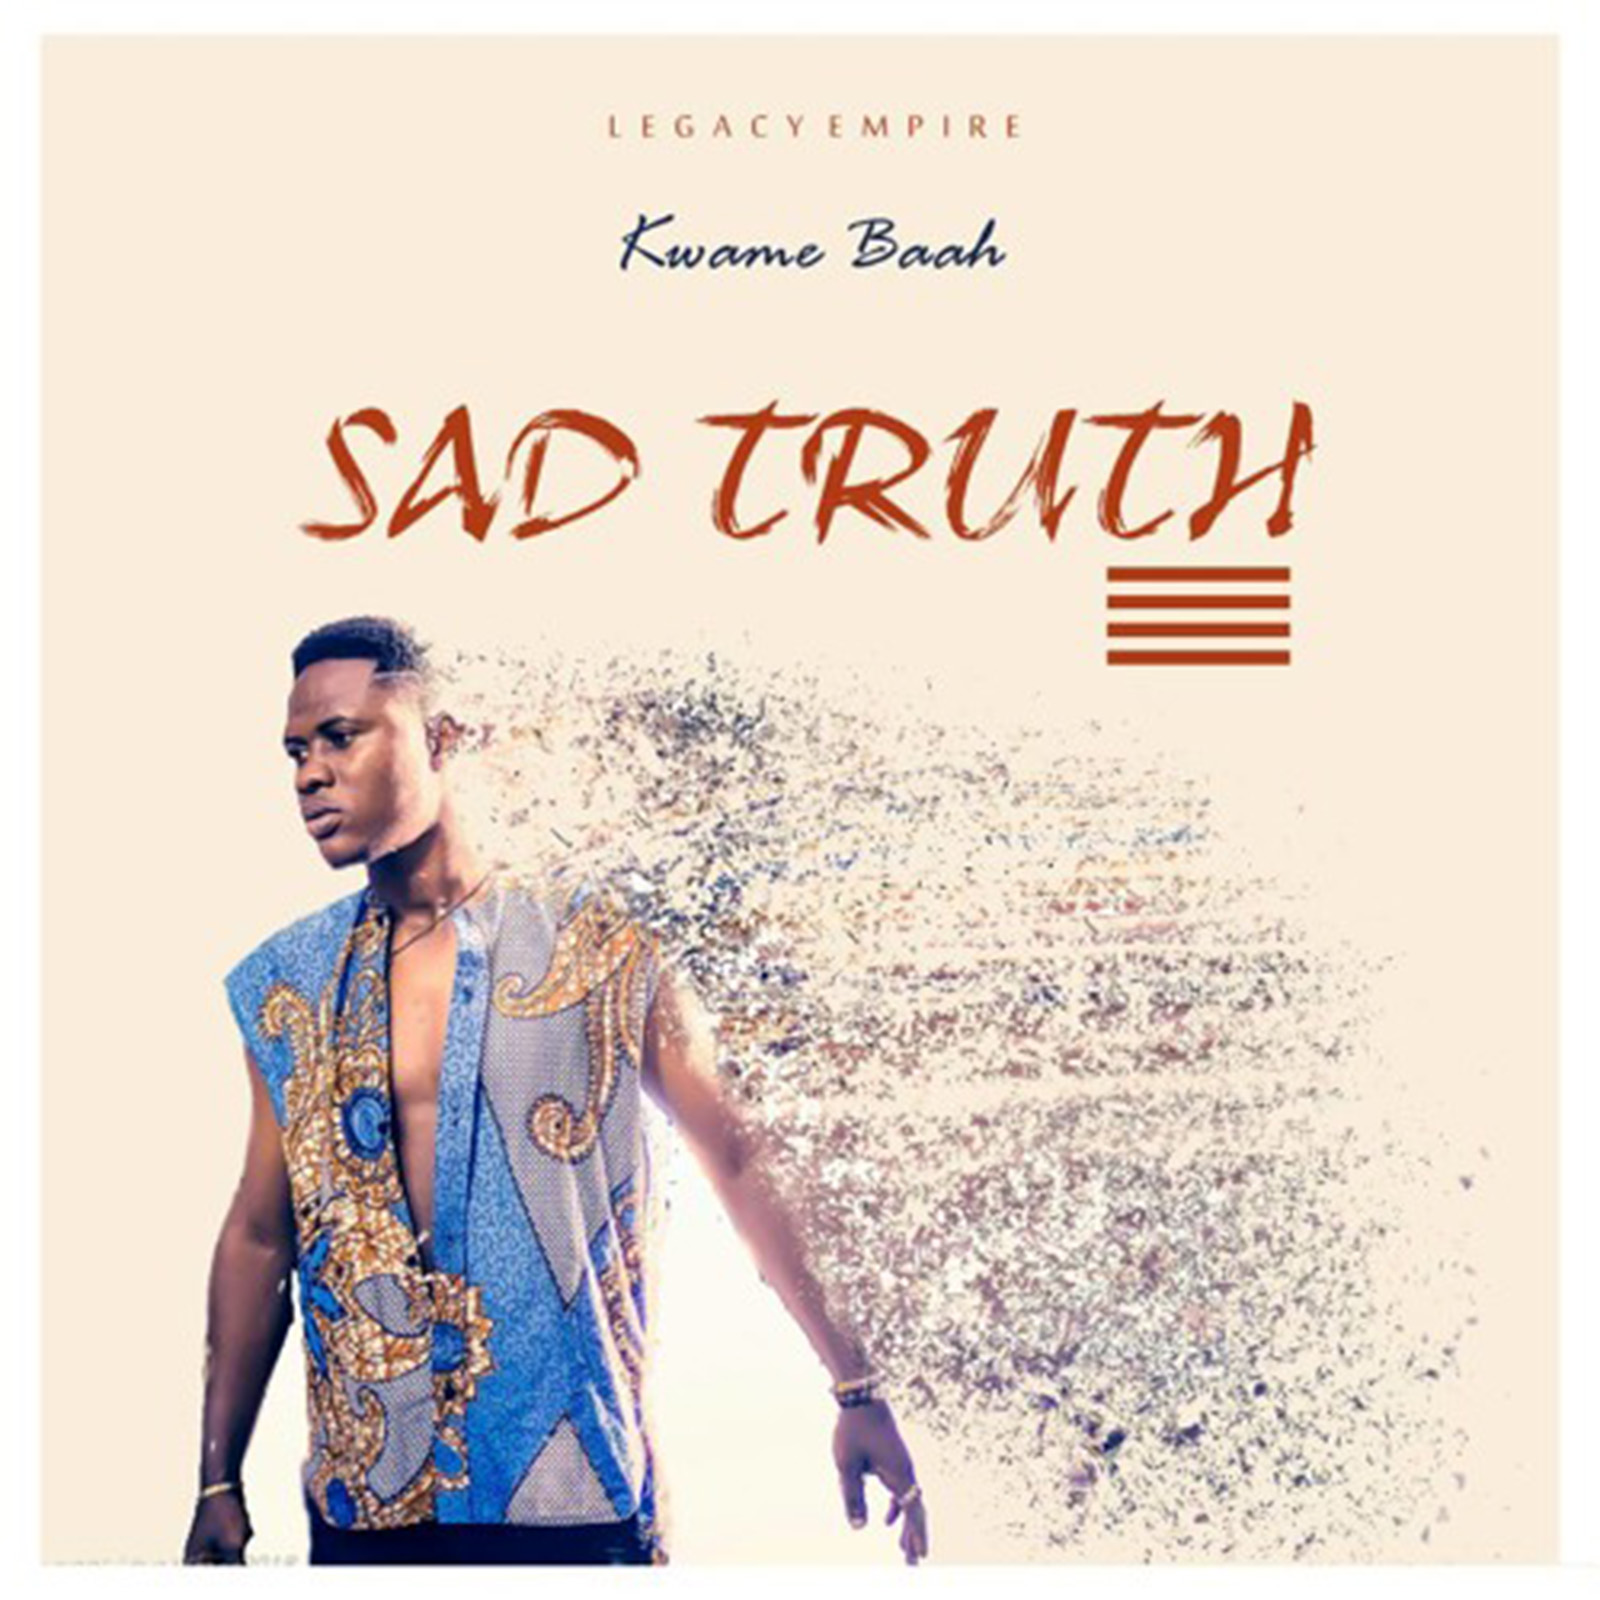 Sad Truth by Kwame Baah